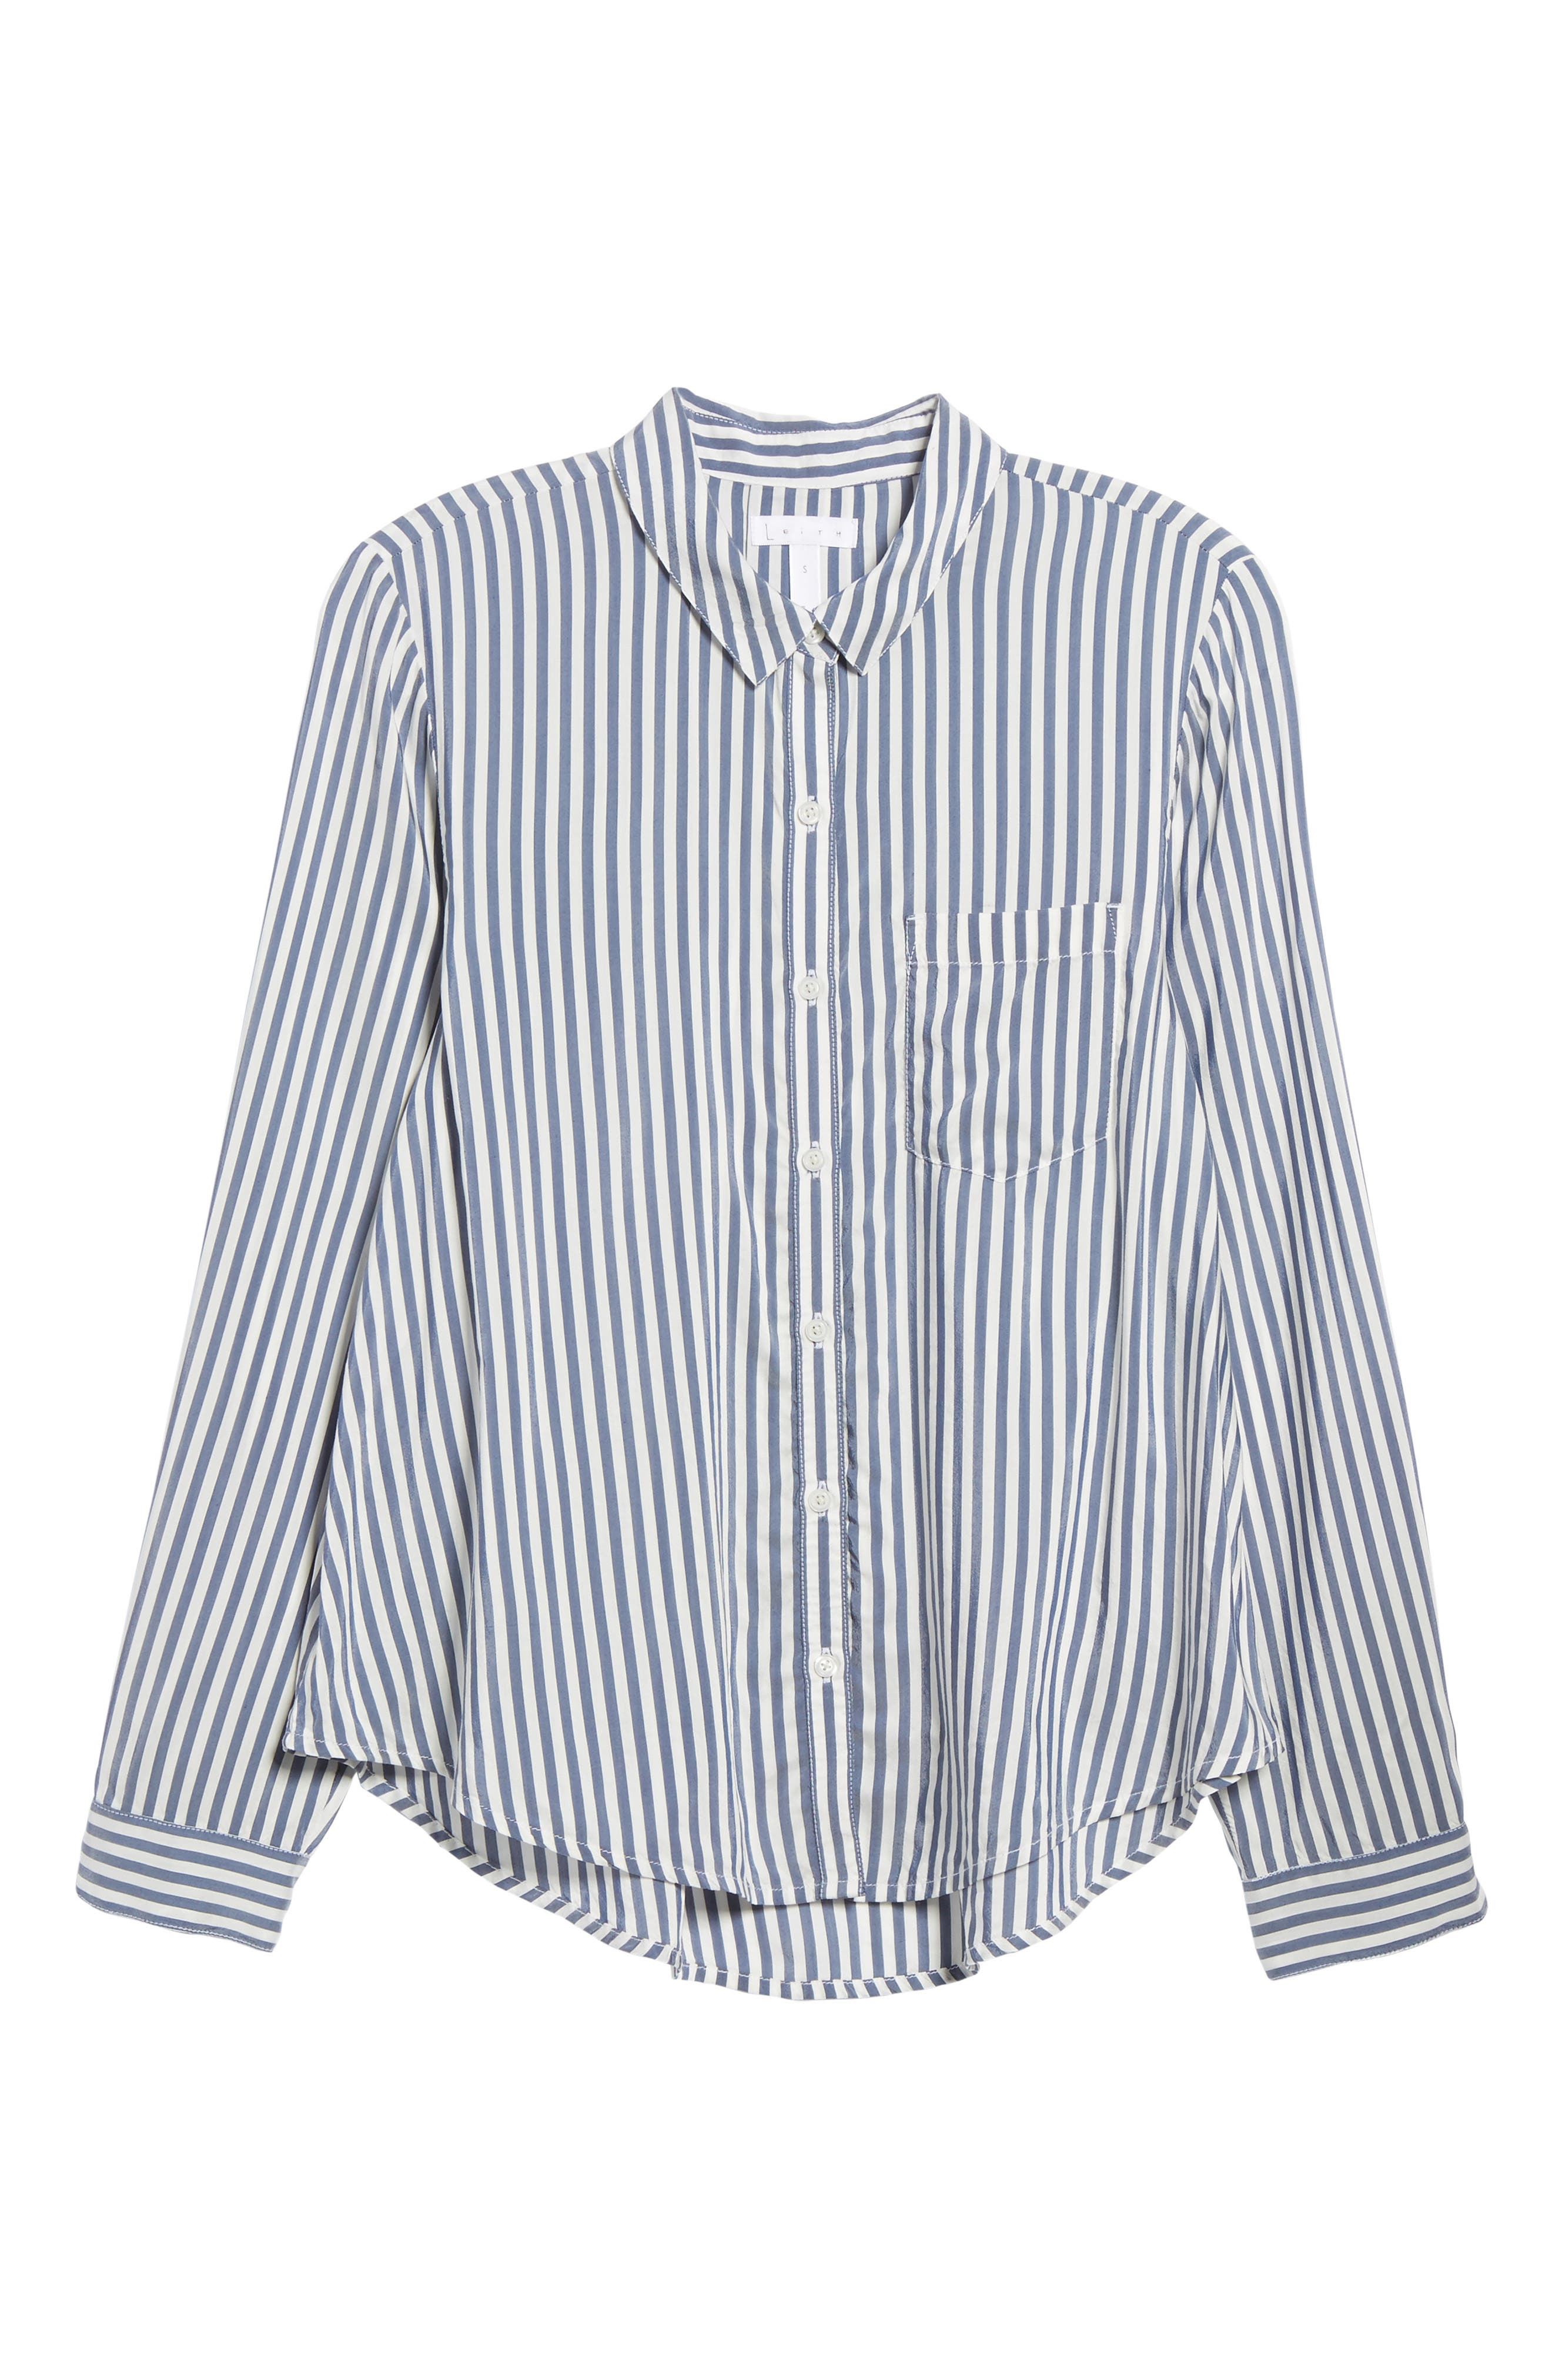 Stripe Shirt,                             Alternate thumbnail 6, color,                             Navy Evening Lucca Stripe